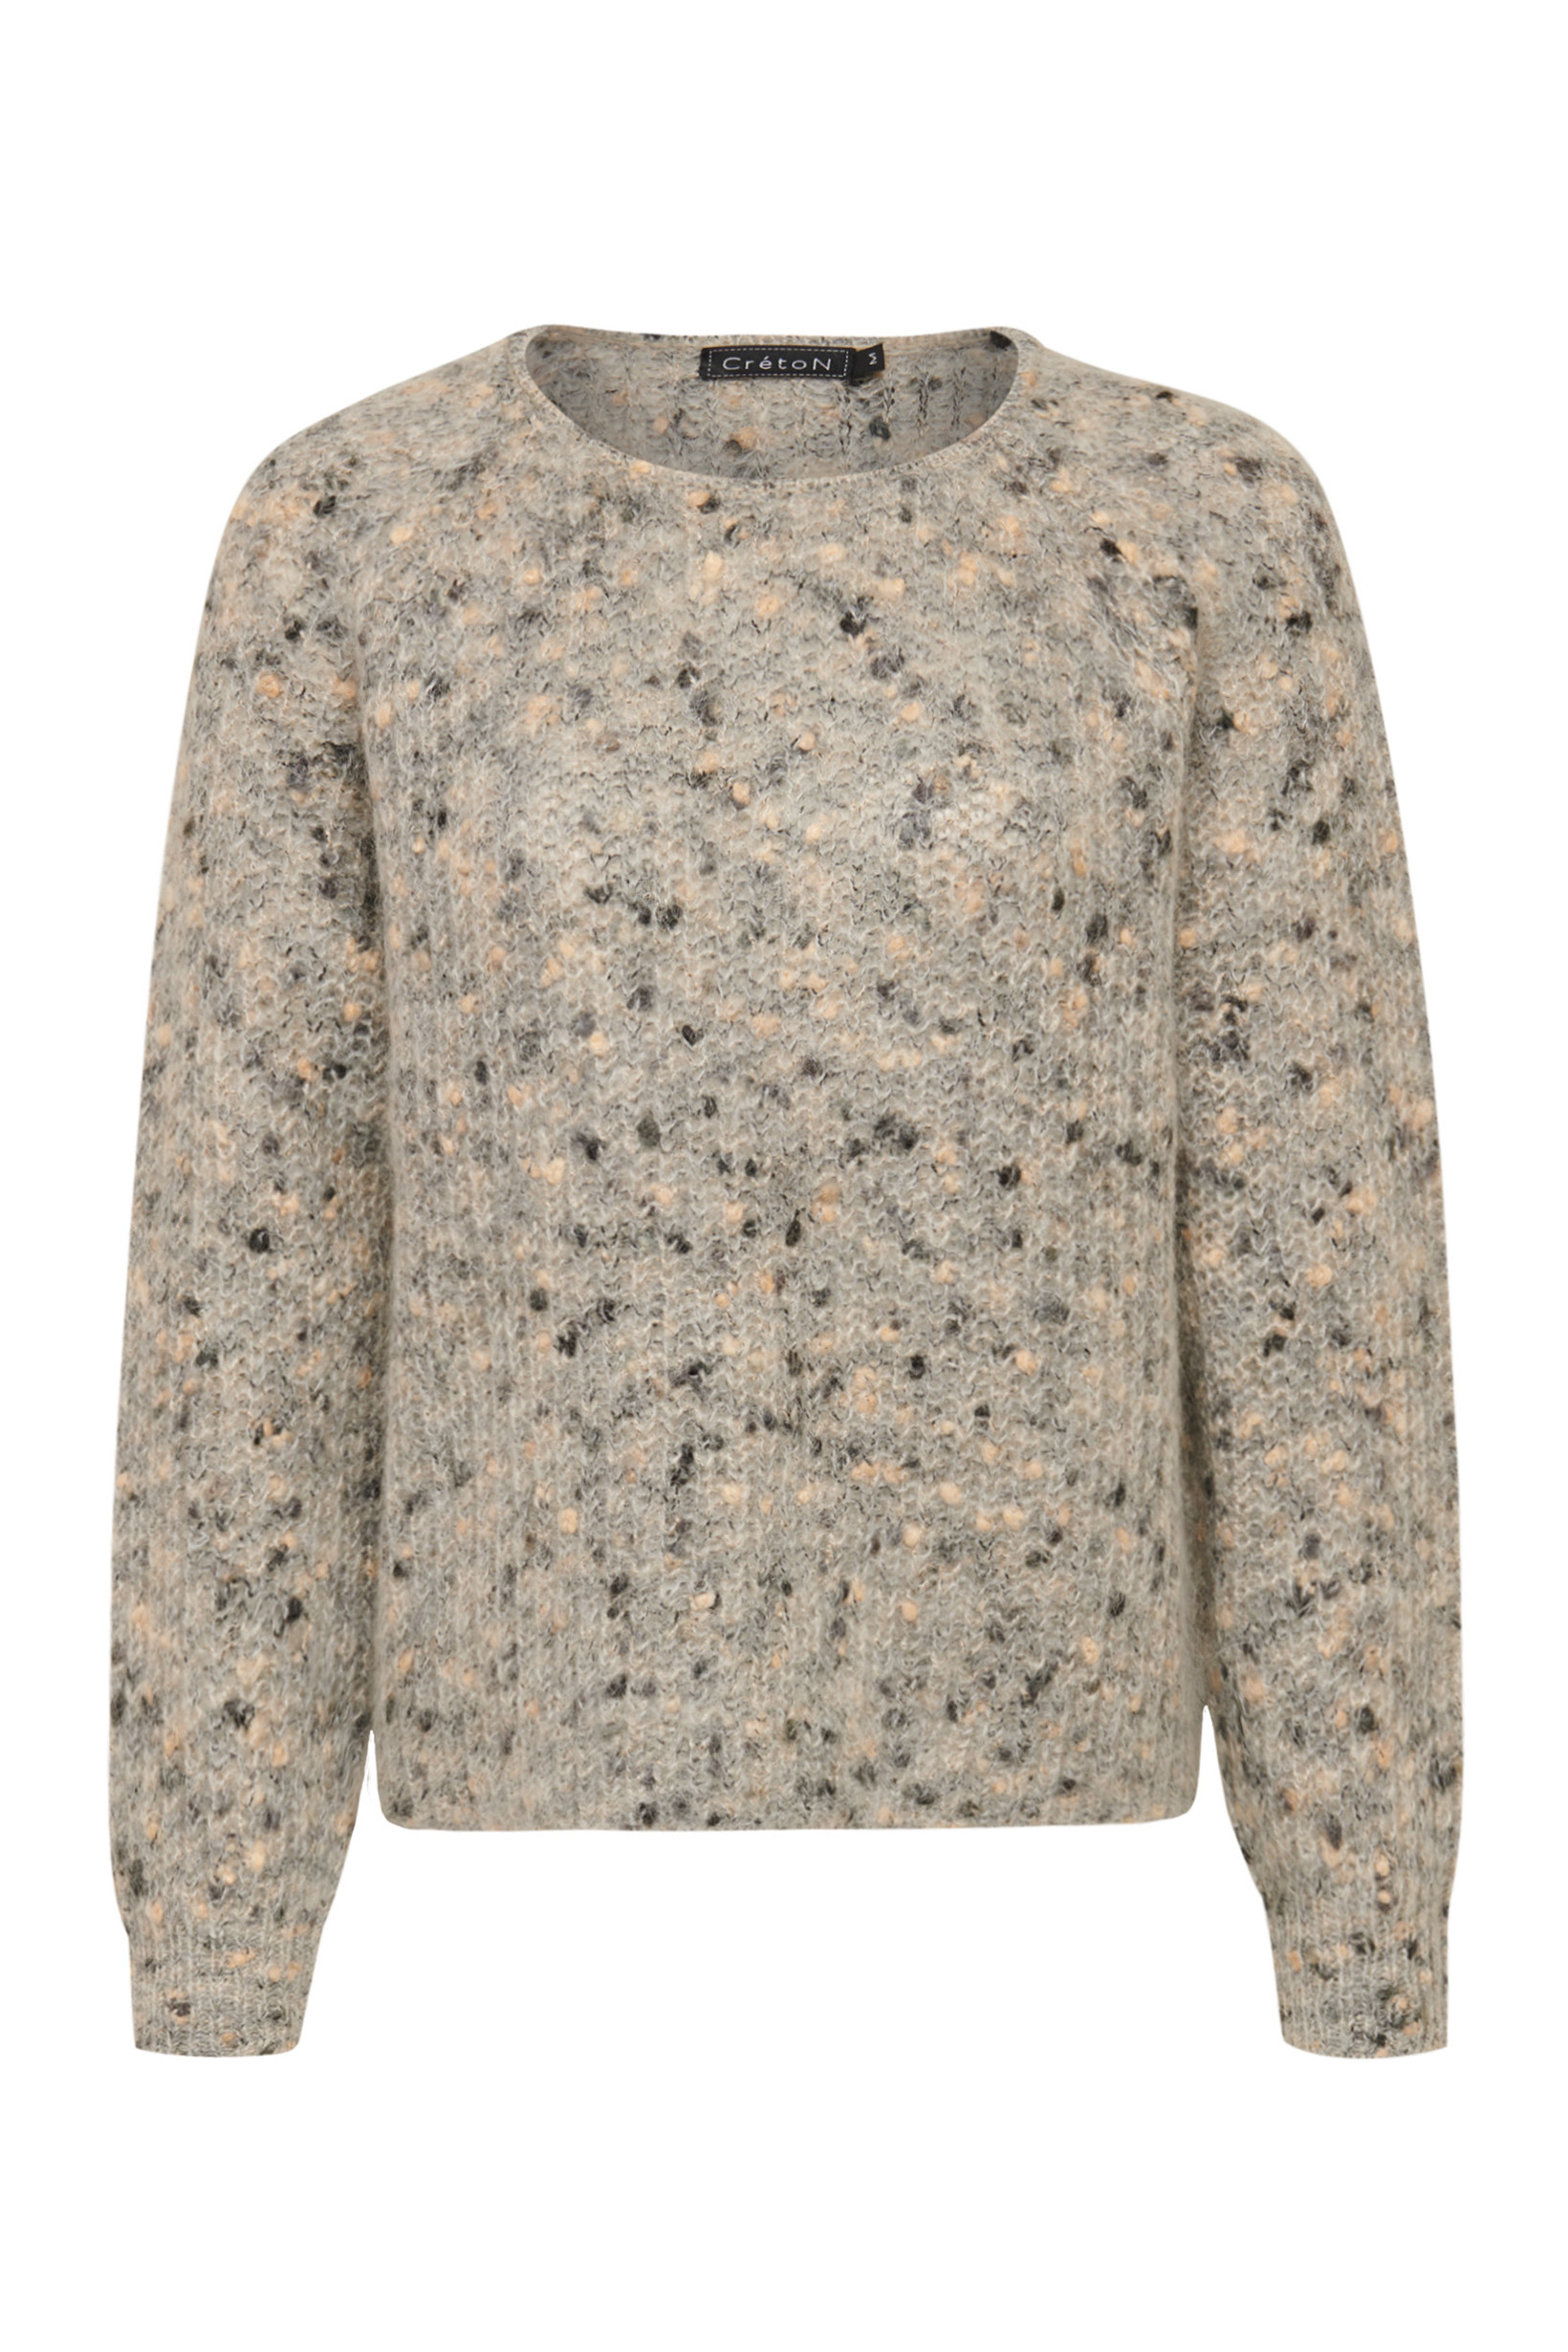 Image of   A-Zoey Sweater i 2 Farver - Beige